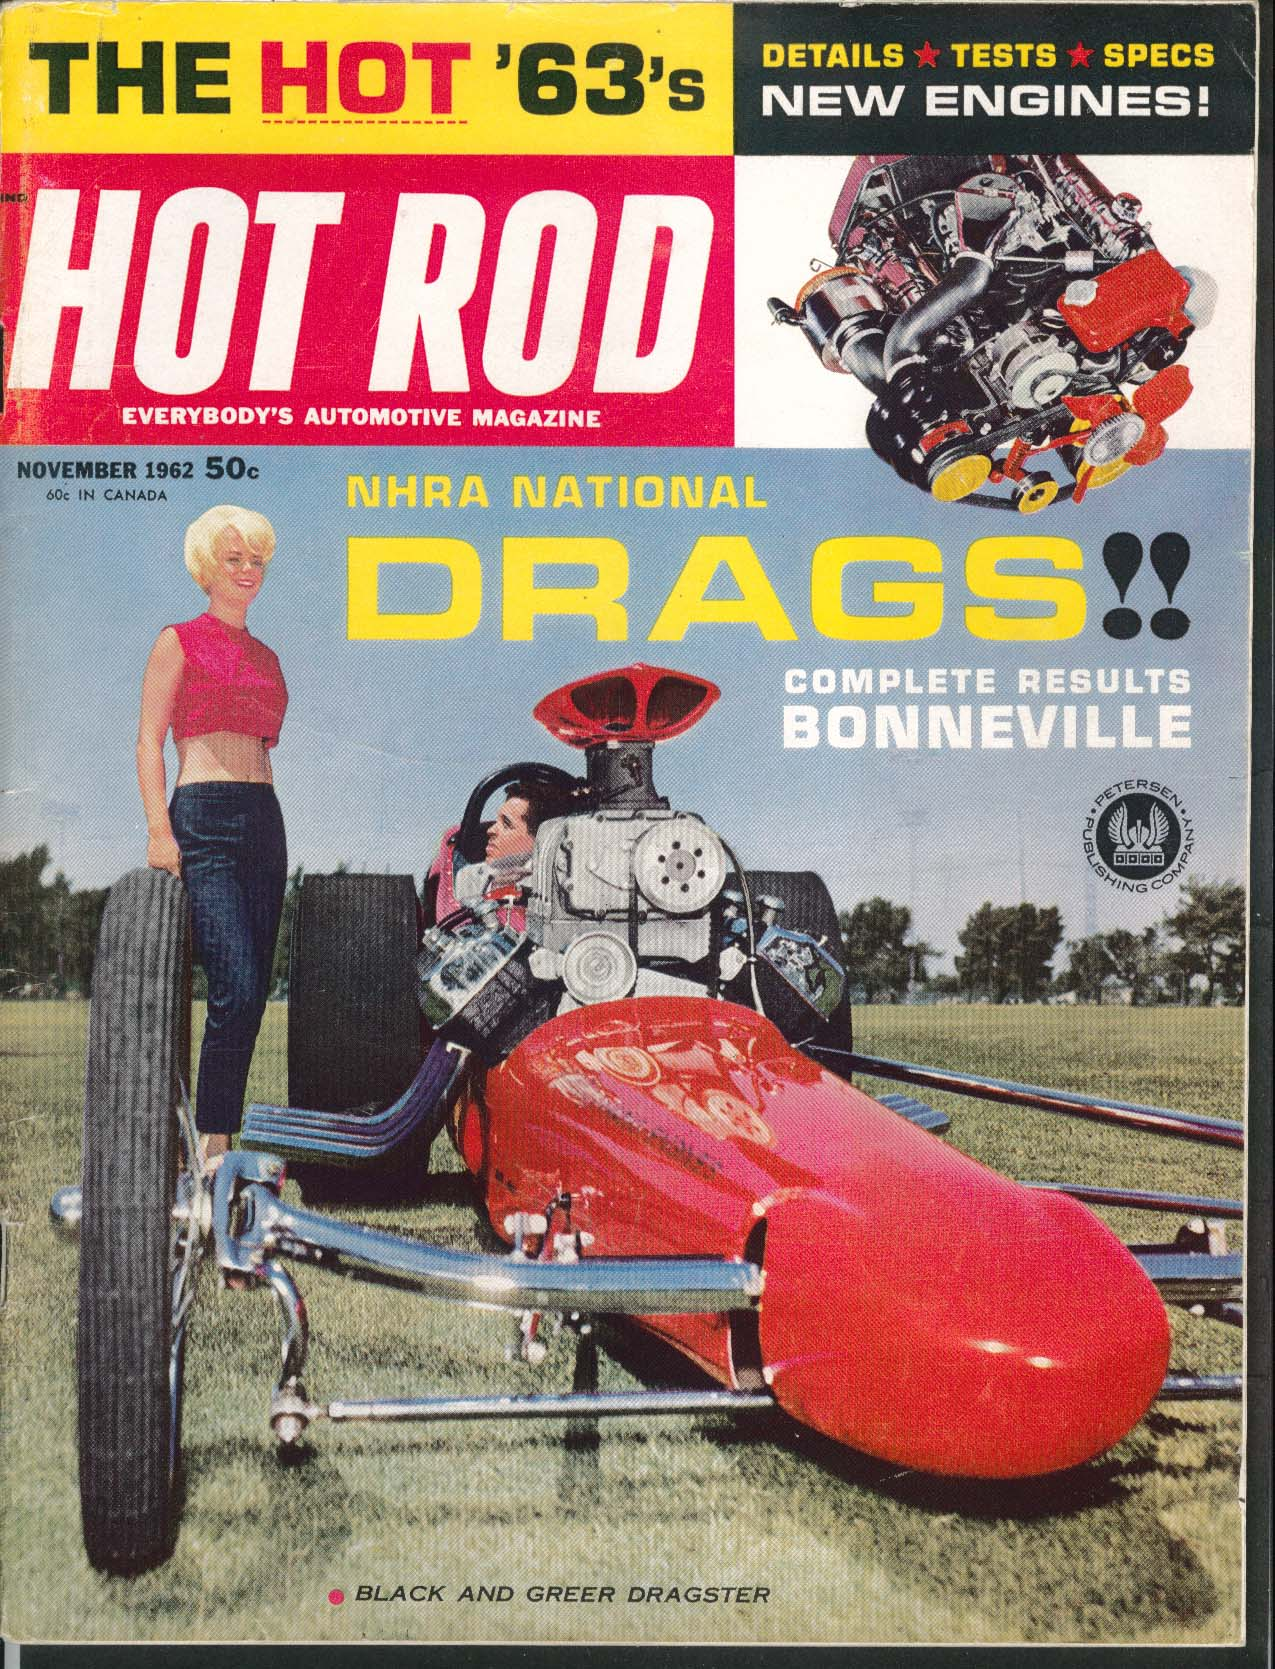 HOT ROD Willys Big Bore BSA Bonneville Nationals Ford Mustang 11 1962